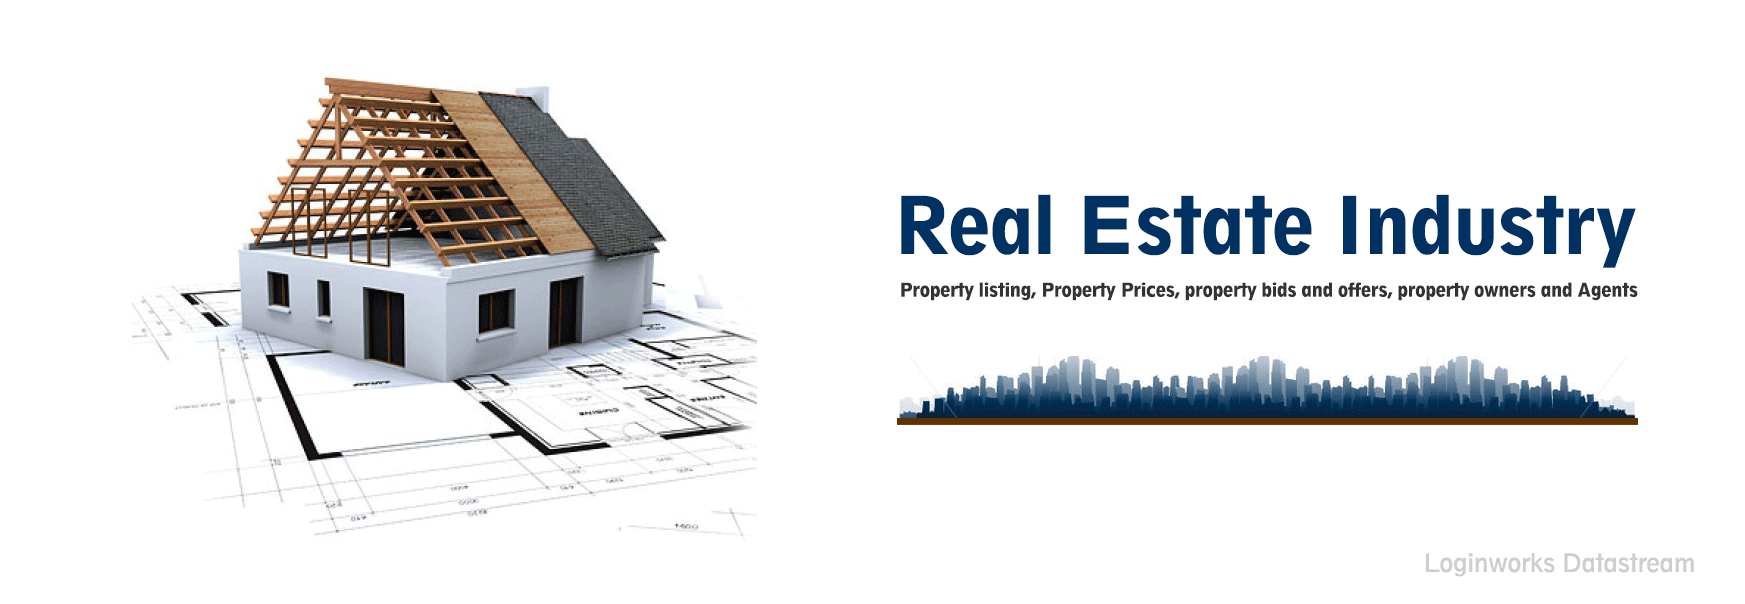 real estate data Real estate is property consisting of land and the buildings on it, along with its natural resources such as crops, minerals or water.